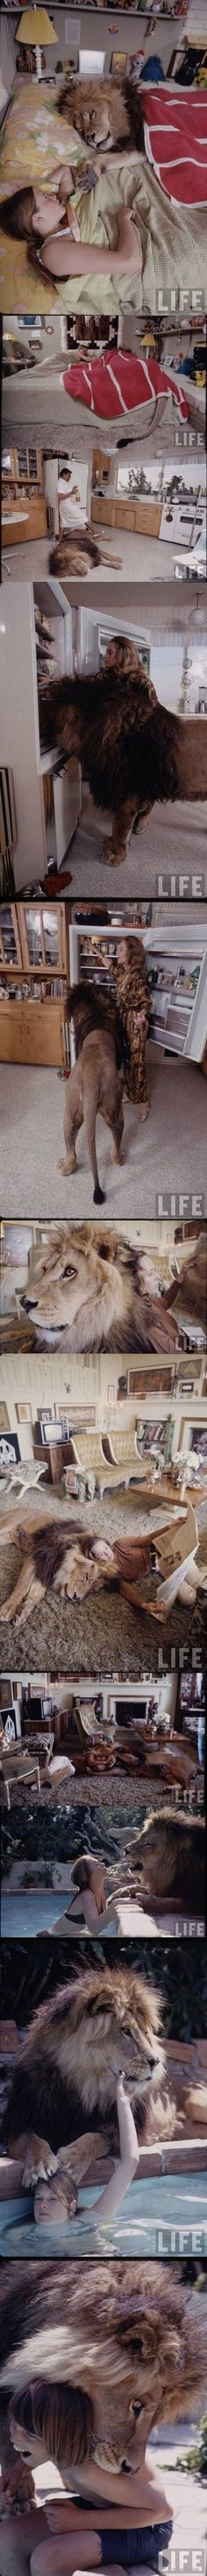 funny, funny pictures, funny photos, wtf, cat, lion, Neil the Lion lives in this family home